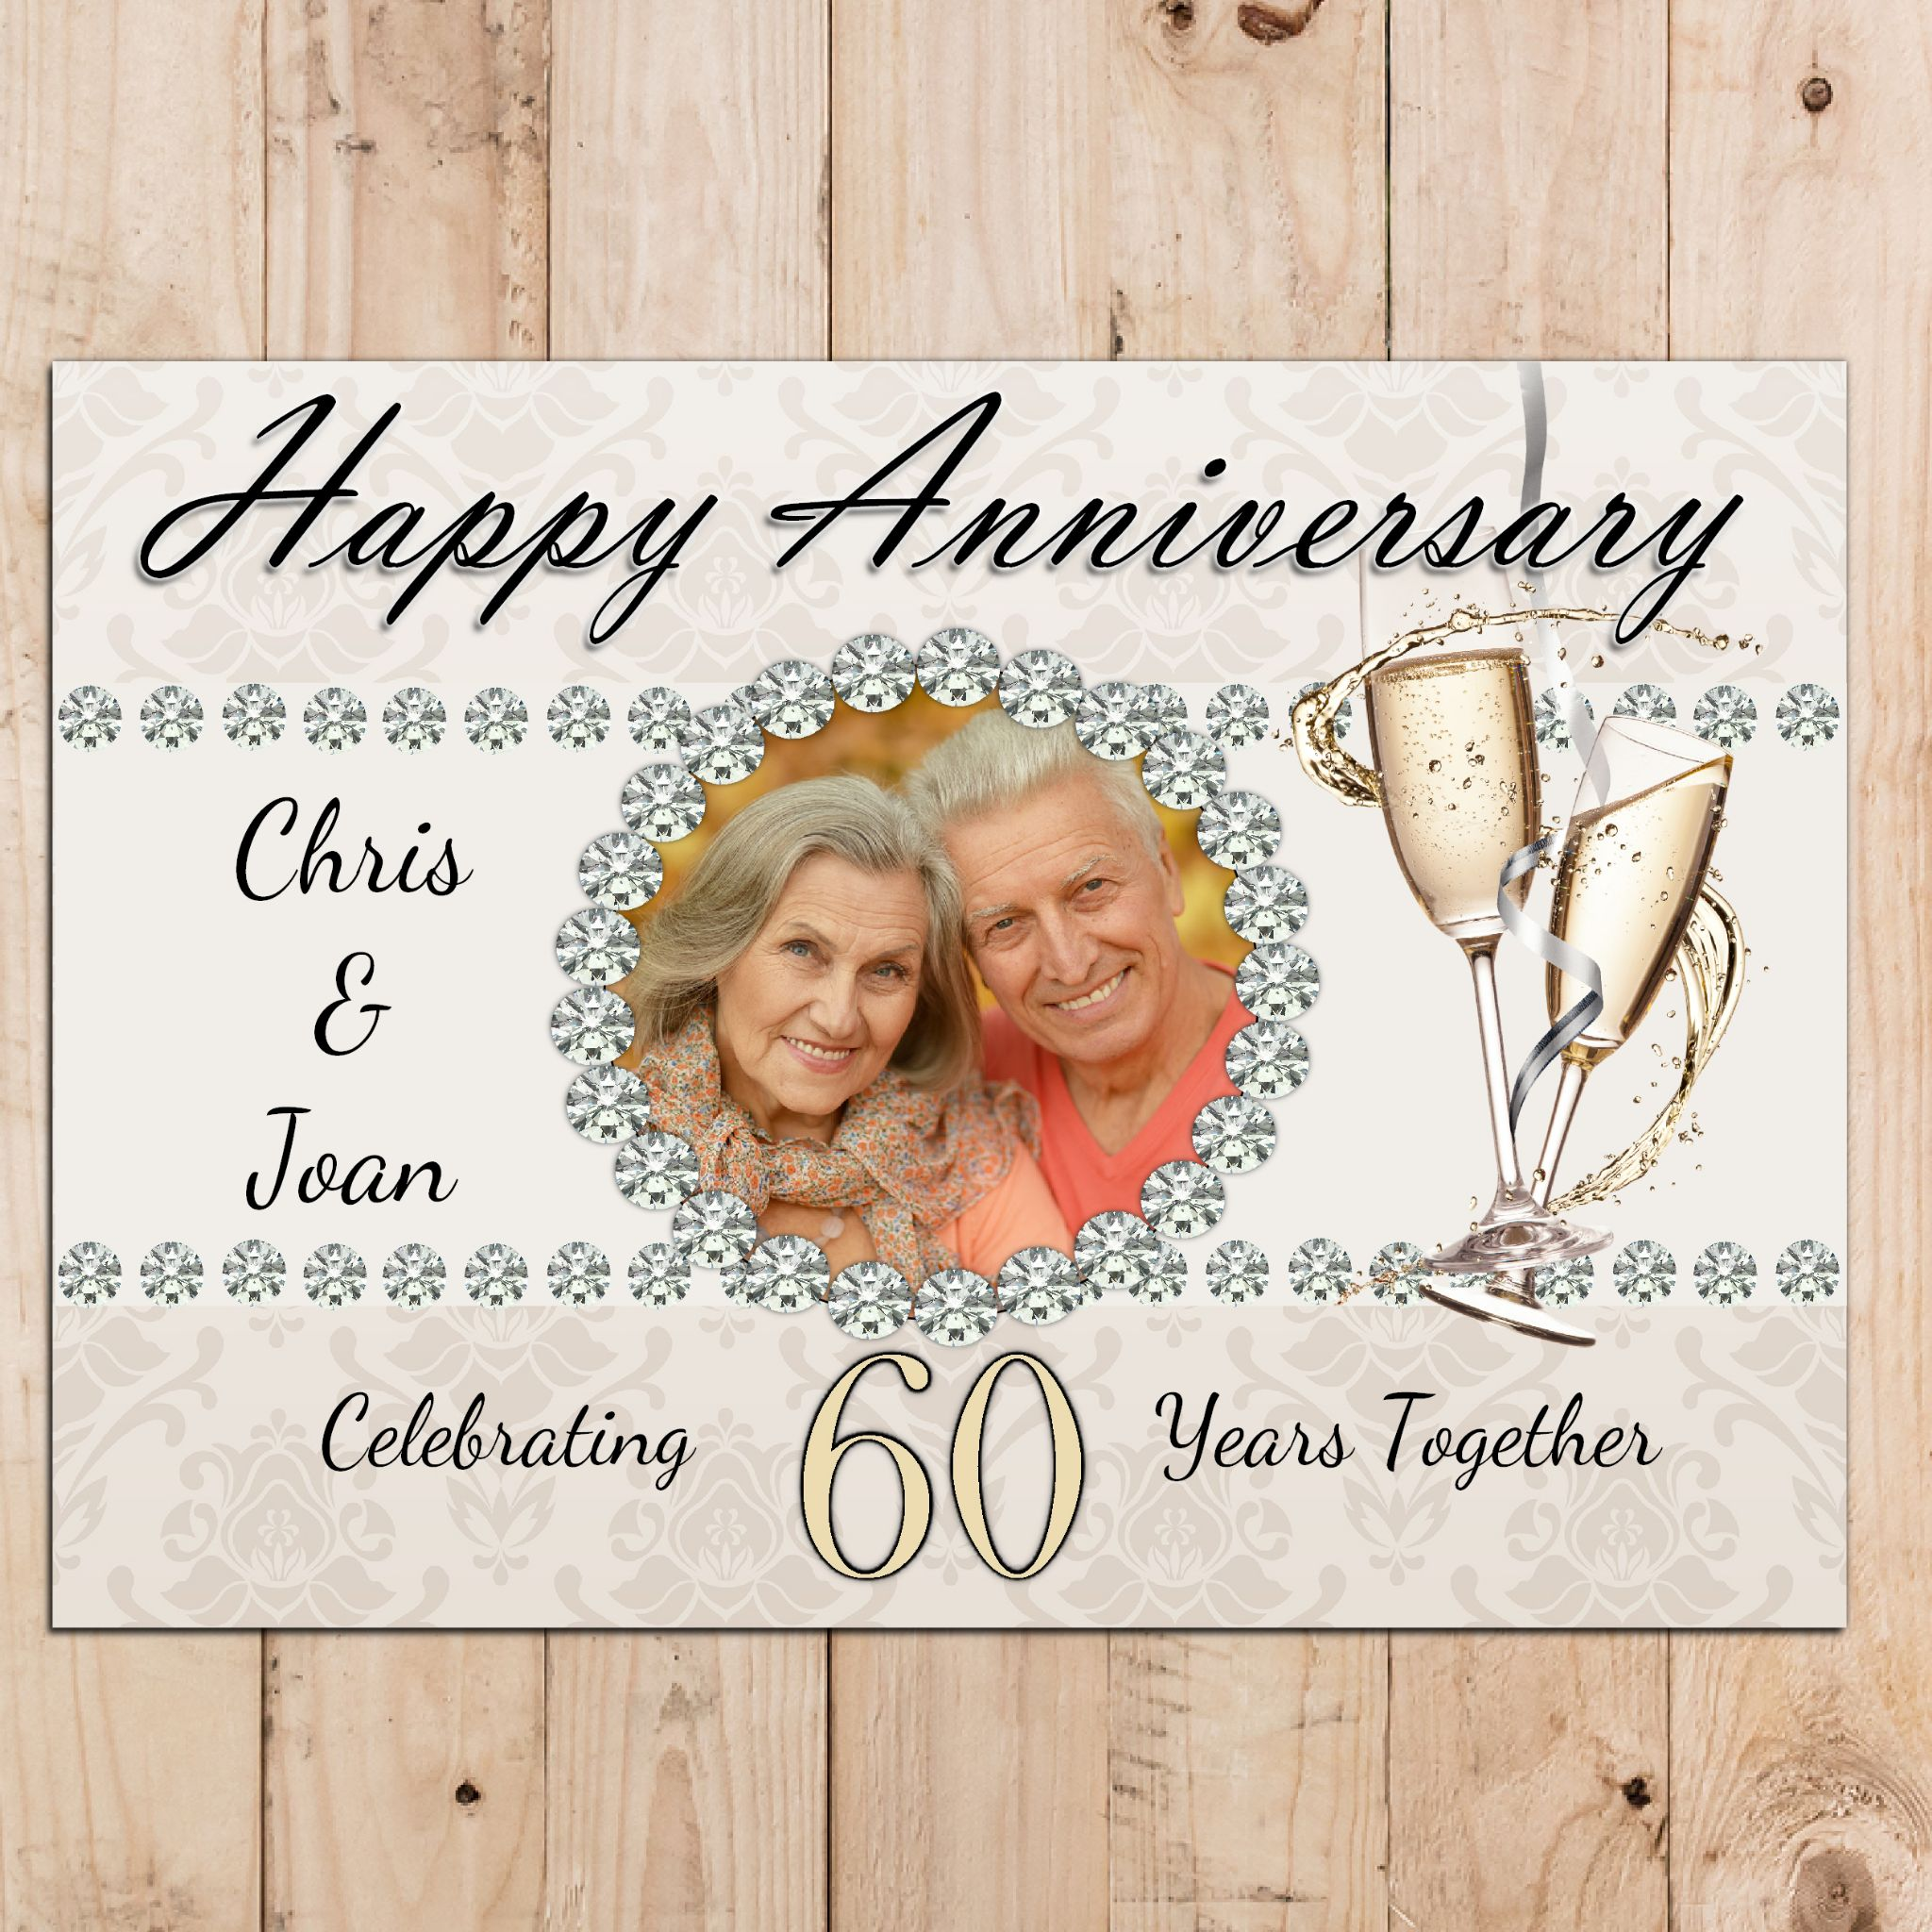 Wedding Anniversary Banners - Page 2